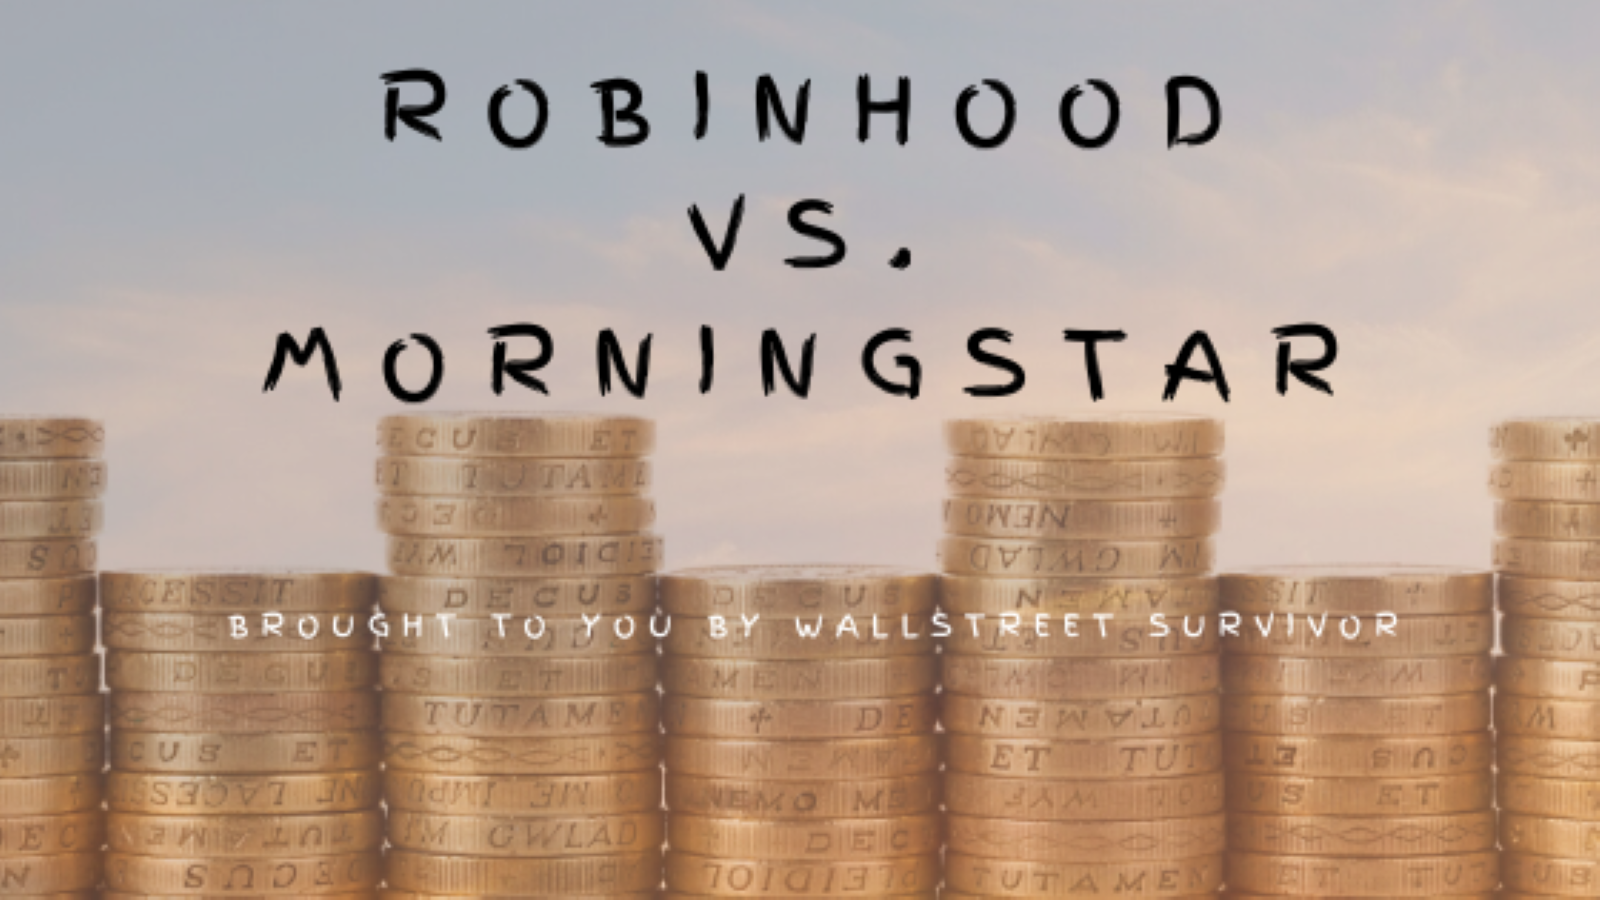 robinhood-morningstar